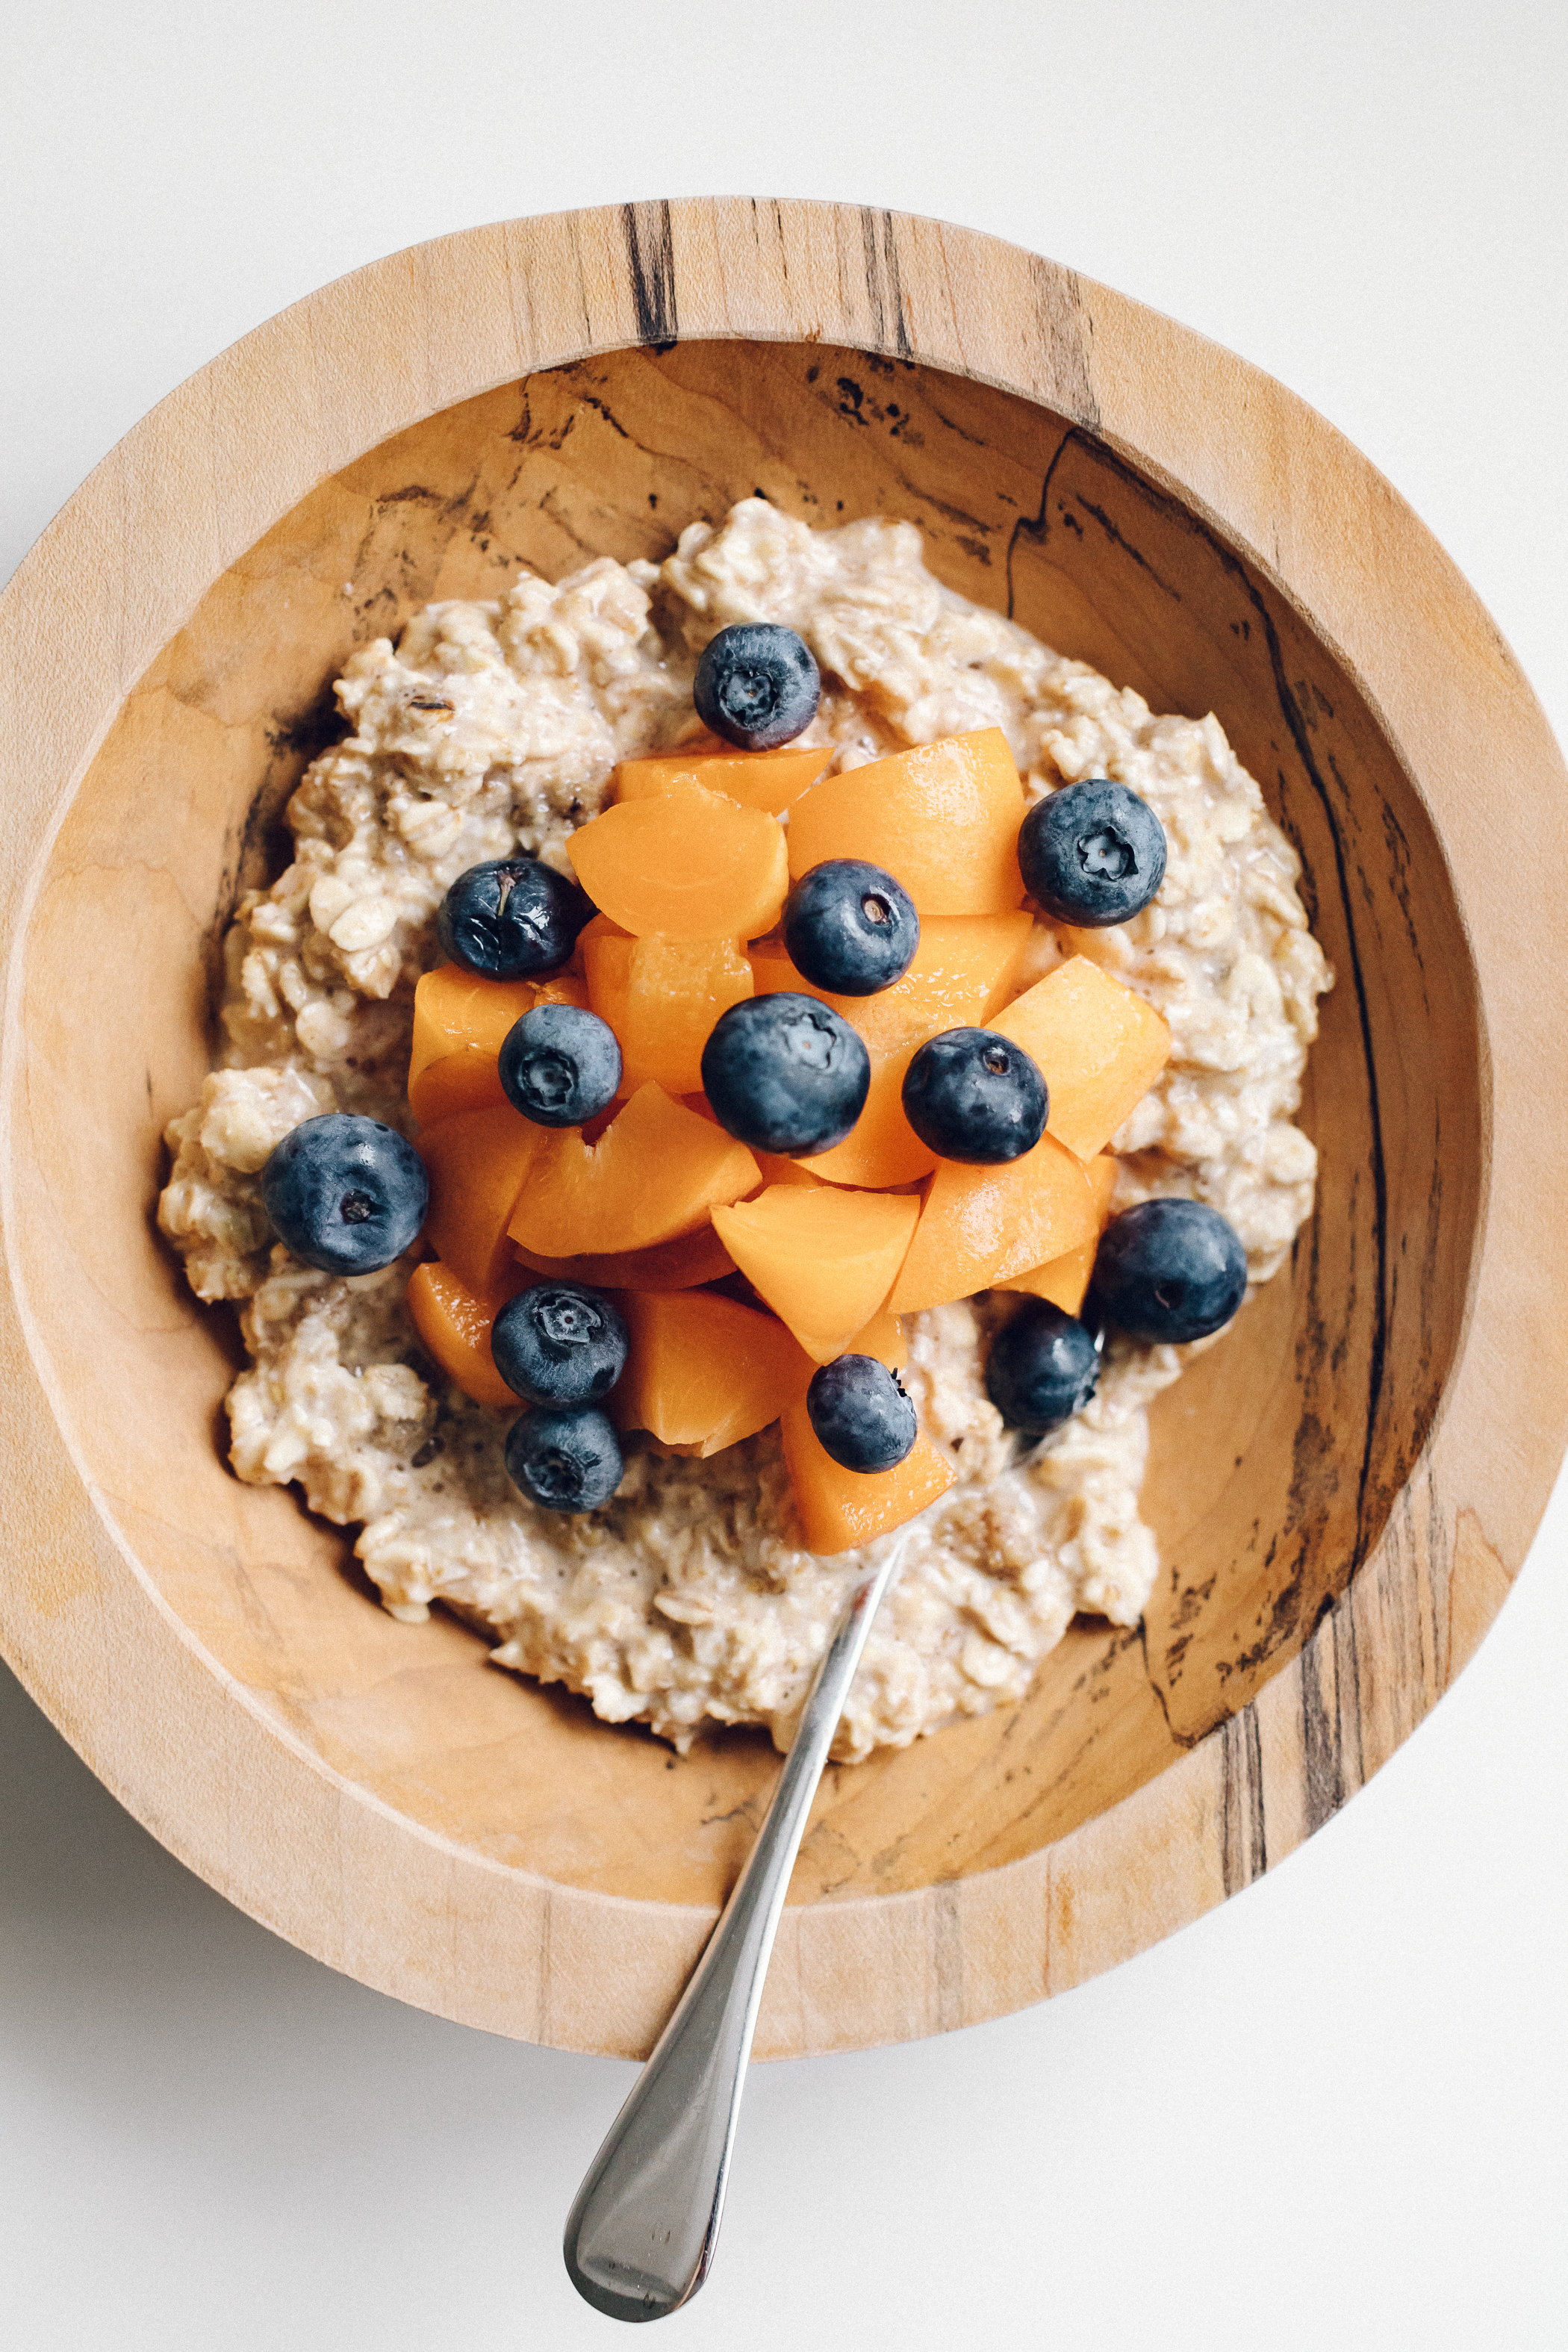 Go-To Overnight Oats by Jessie May